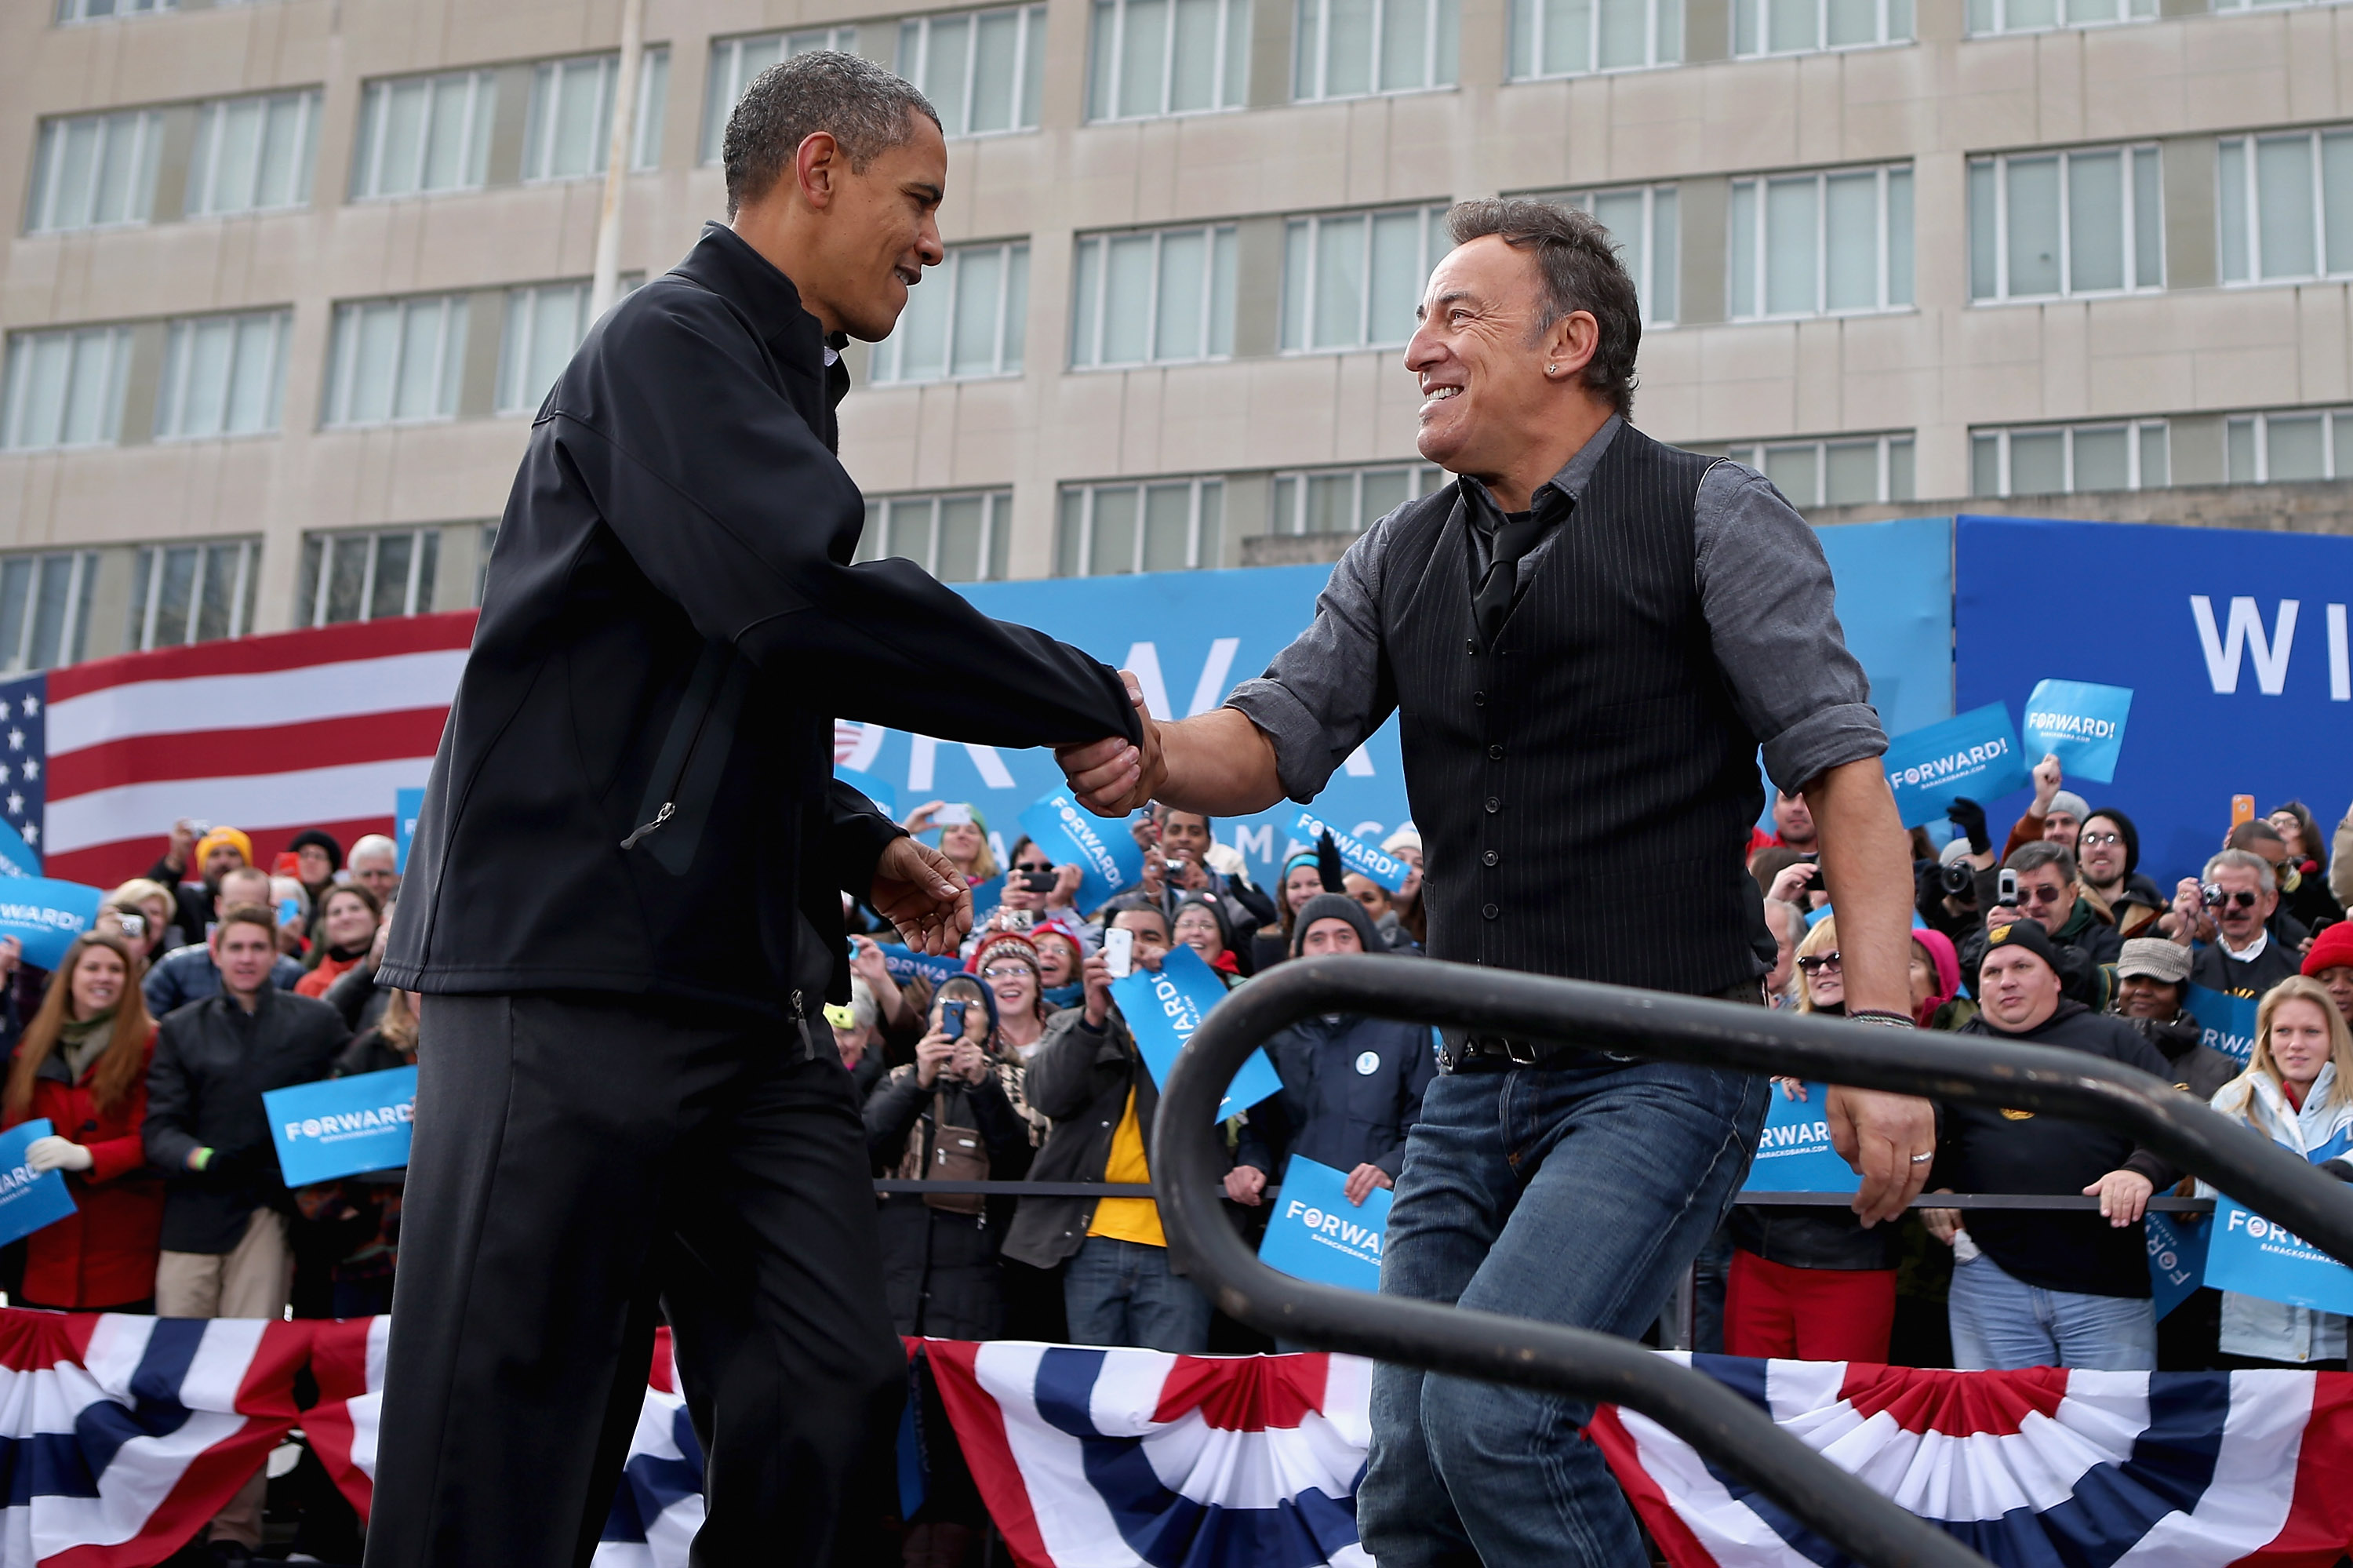 Shit, I campaigned with Obama in 2012, what happened last year?